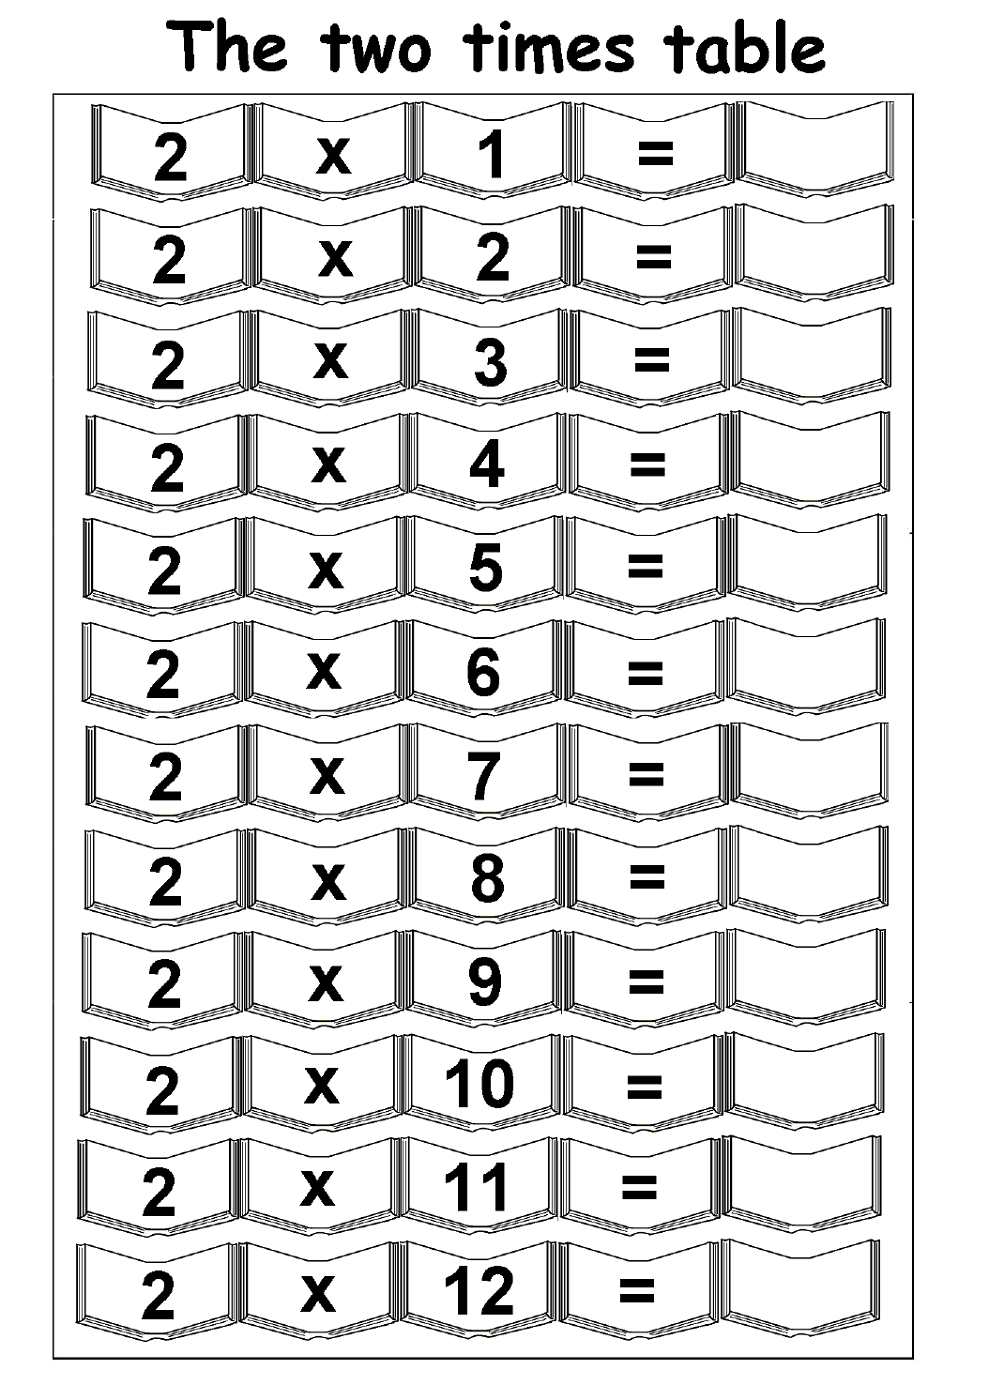 2 times table worksheet for math